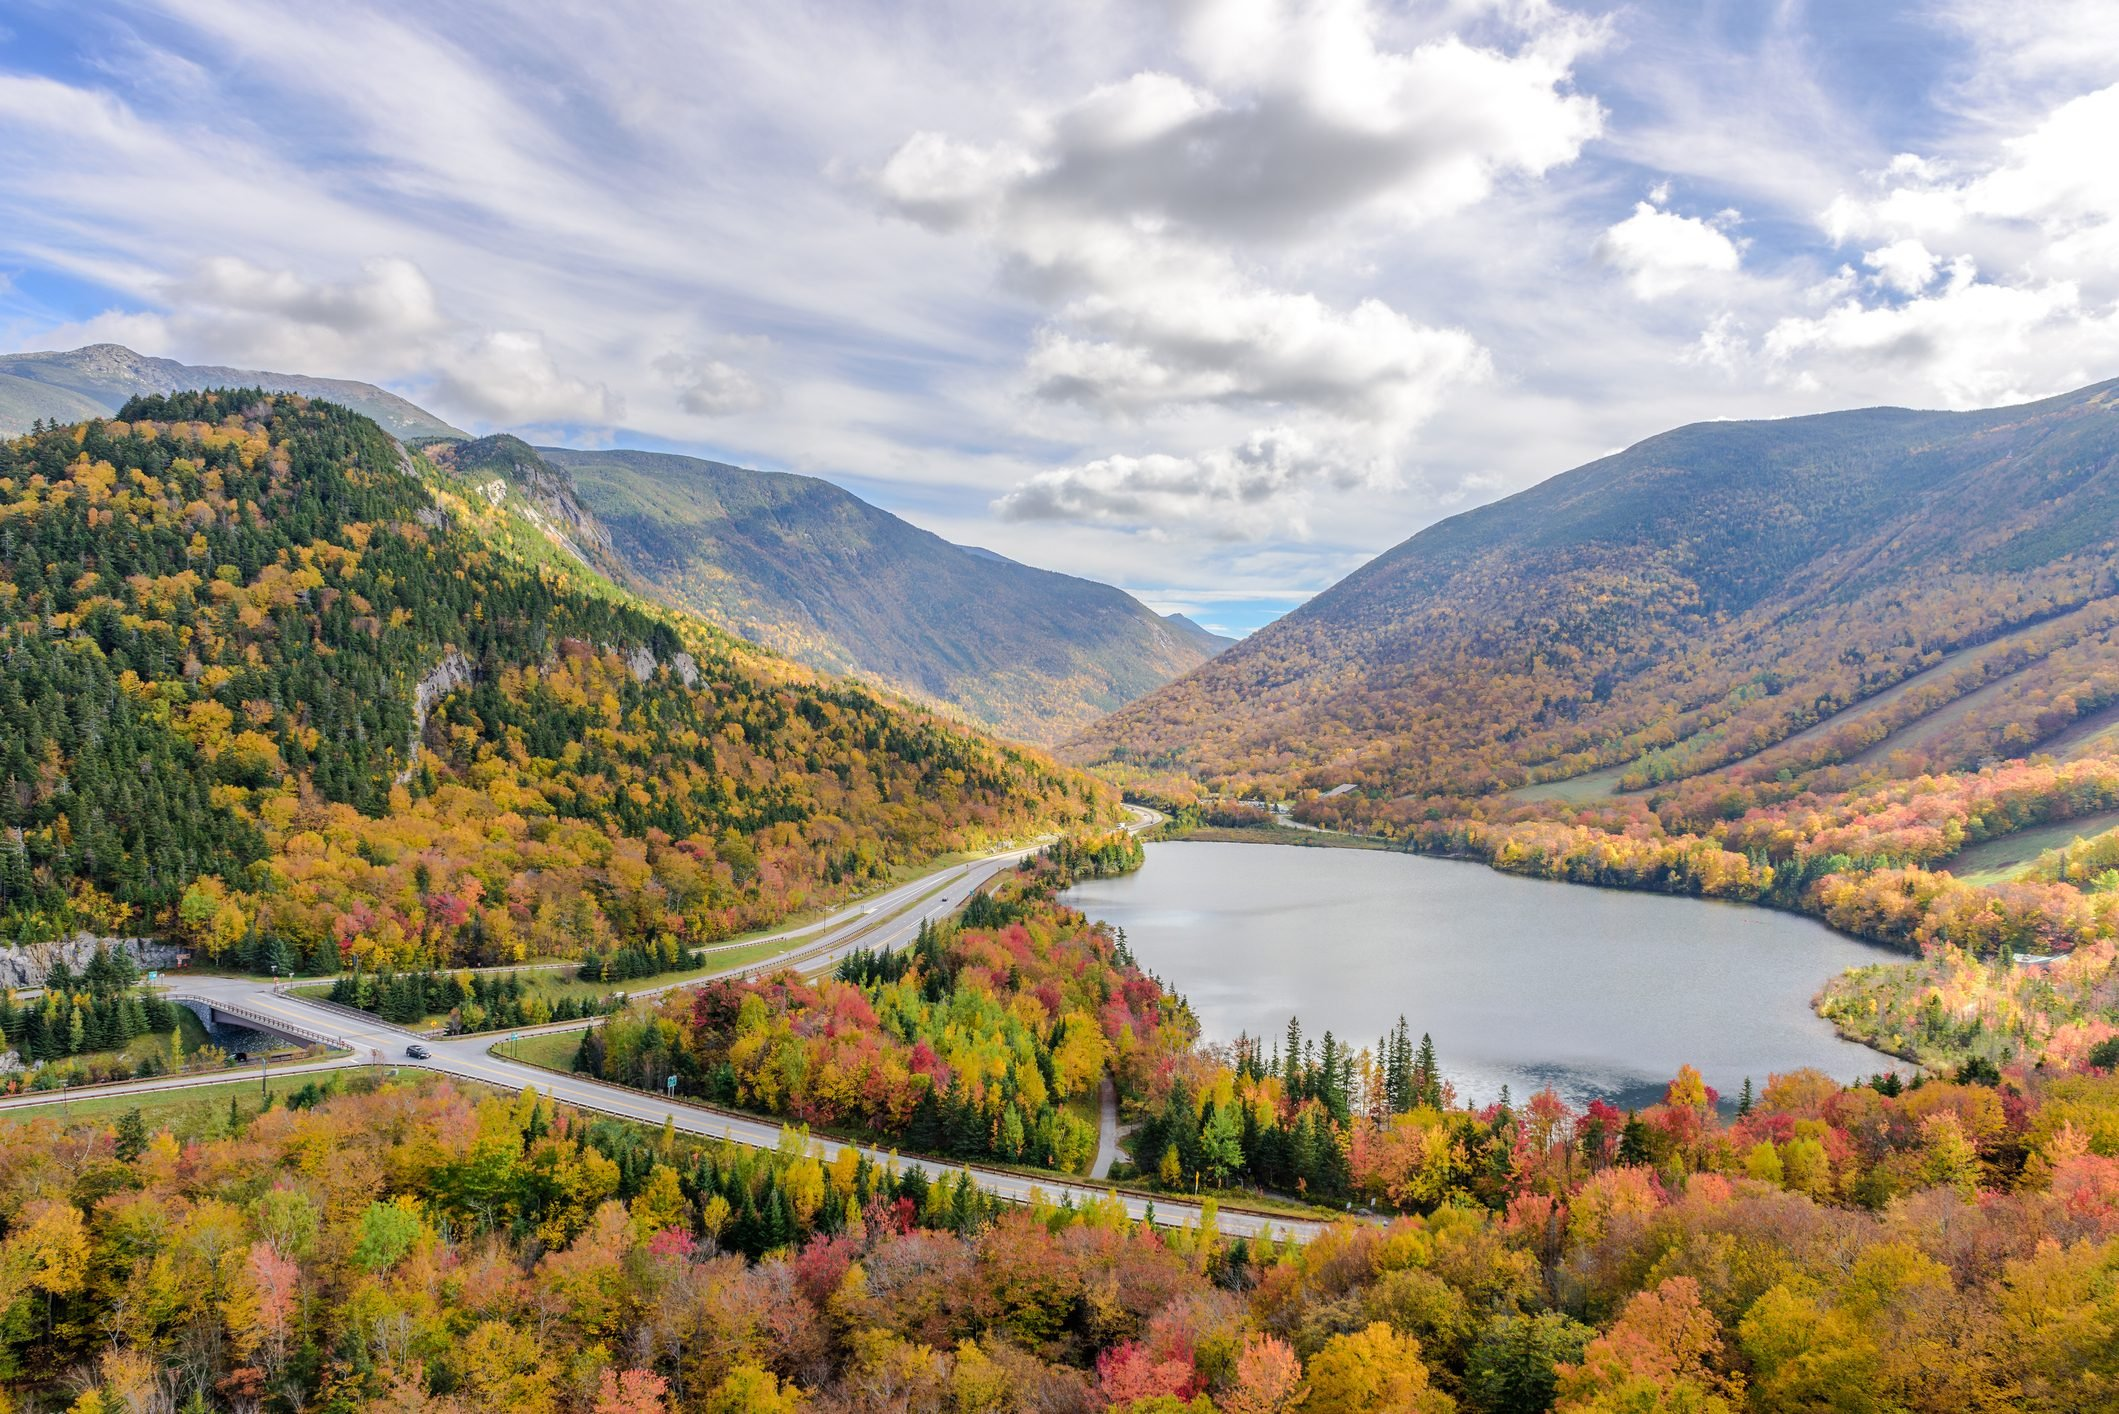 Franconia notch state park during fall